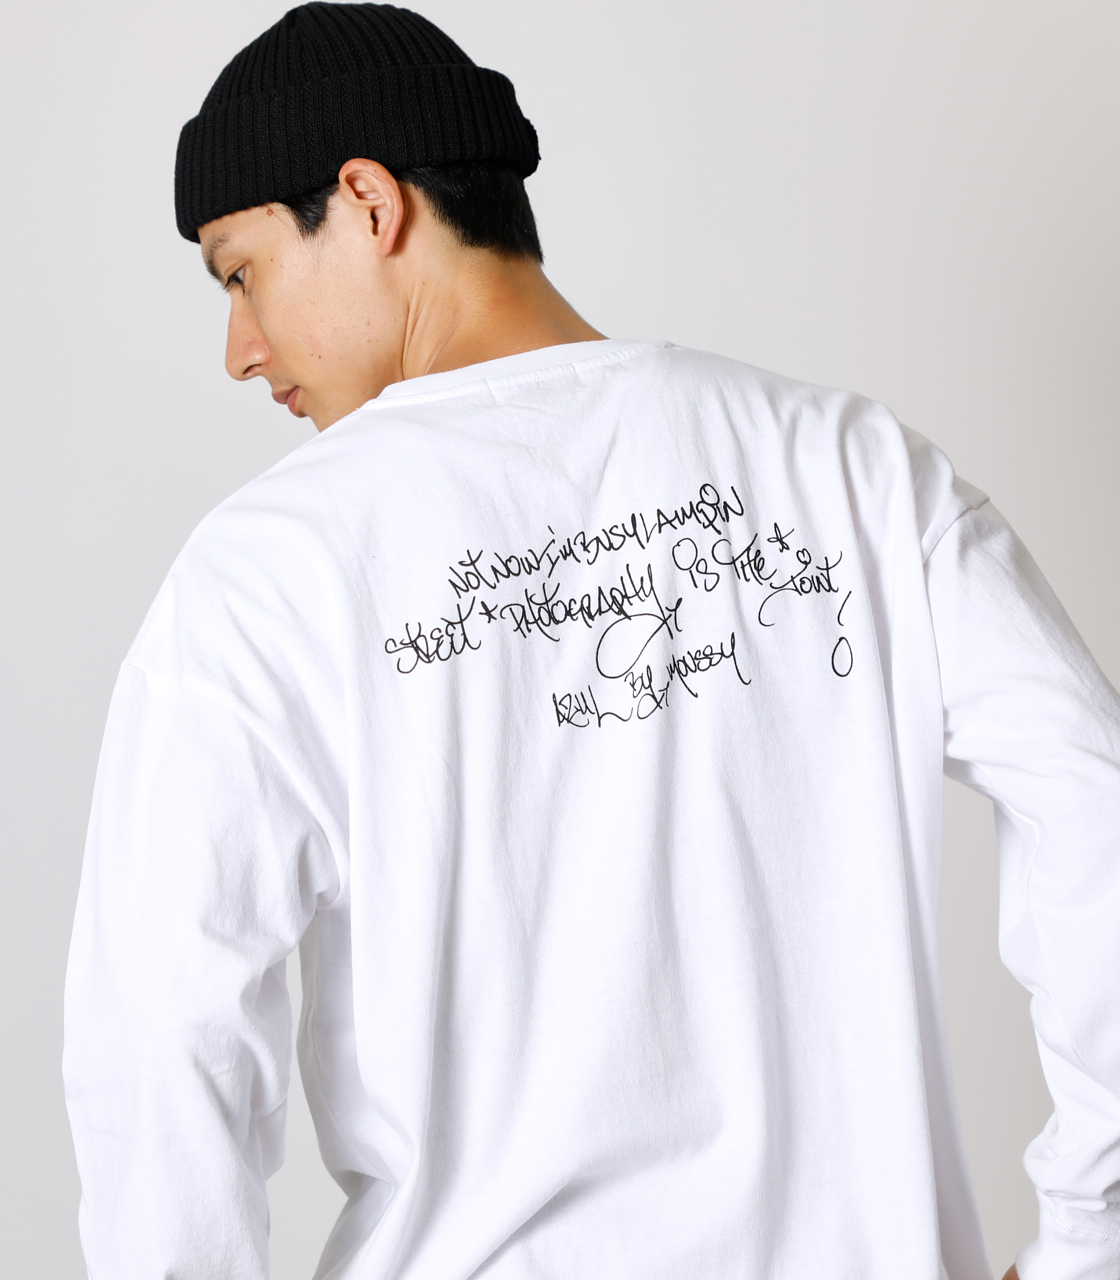 RICKY POWELL×AZUL PHOTO TEE Ⅲ/RICKY POWELL×AZULフォトTシャツⅢ 詳細画像 WHT 3